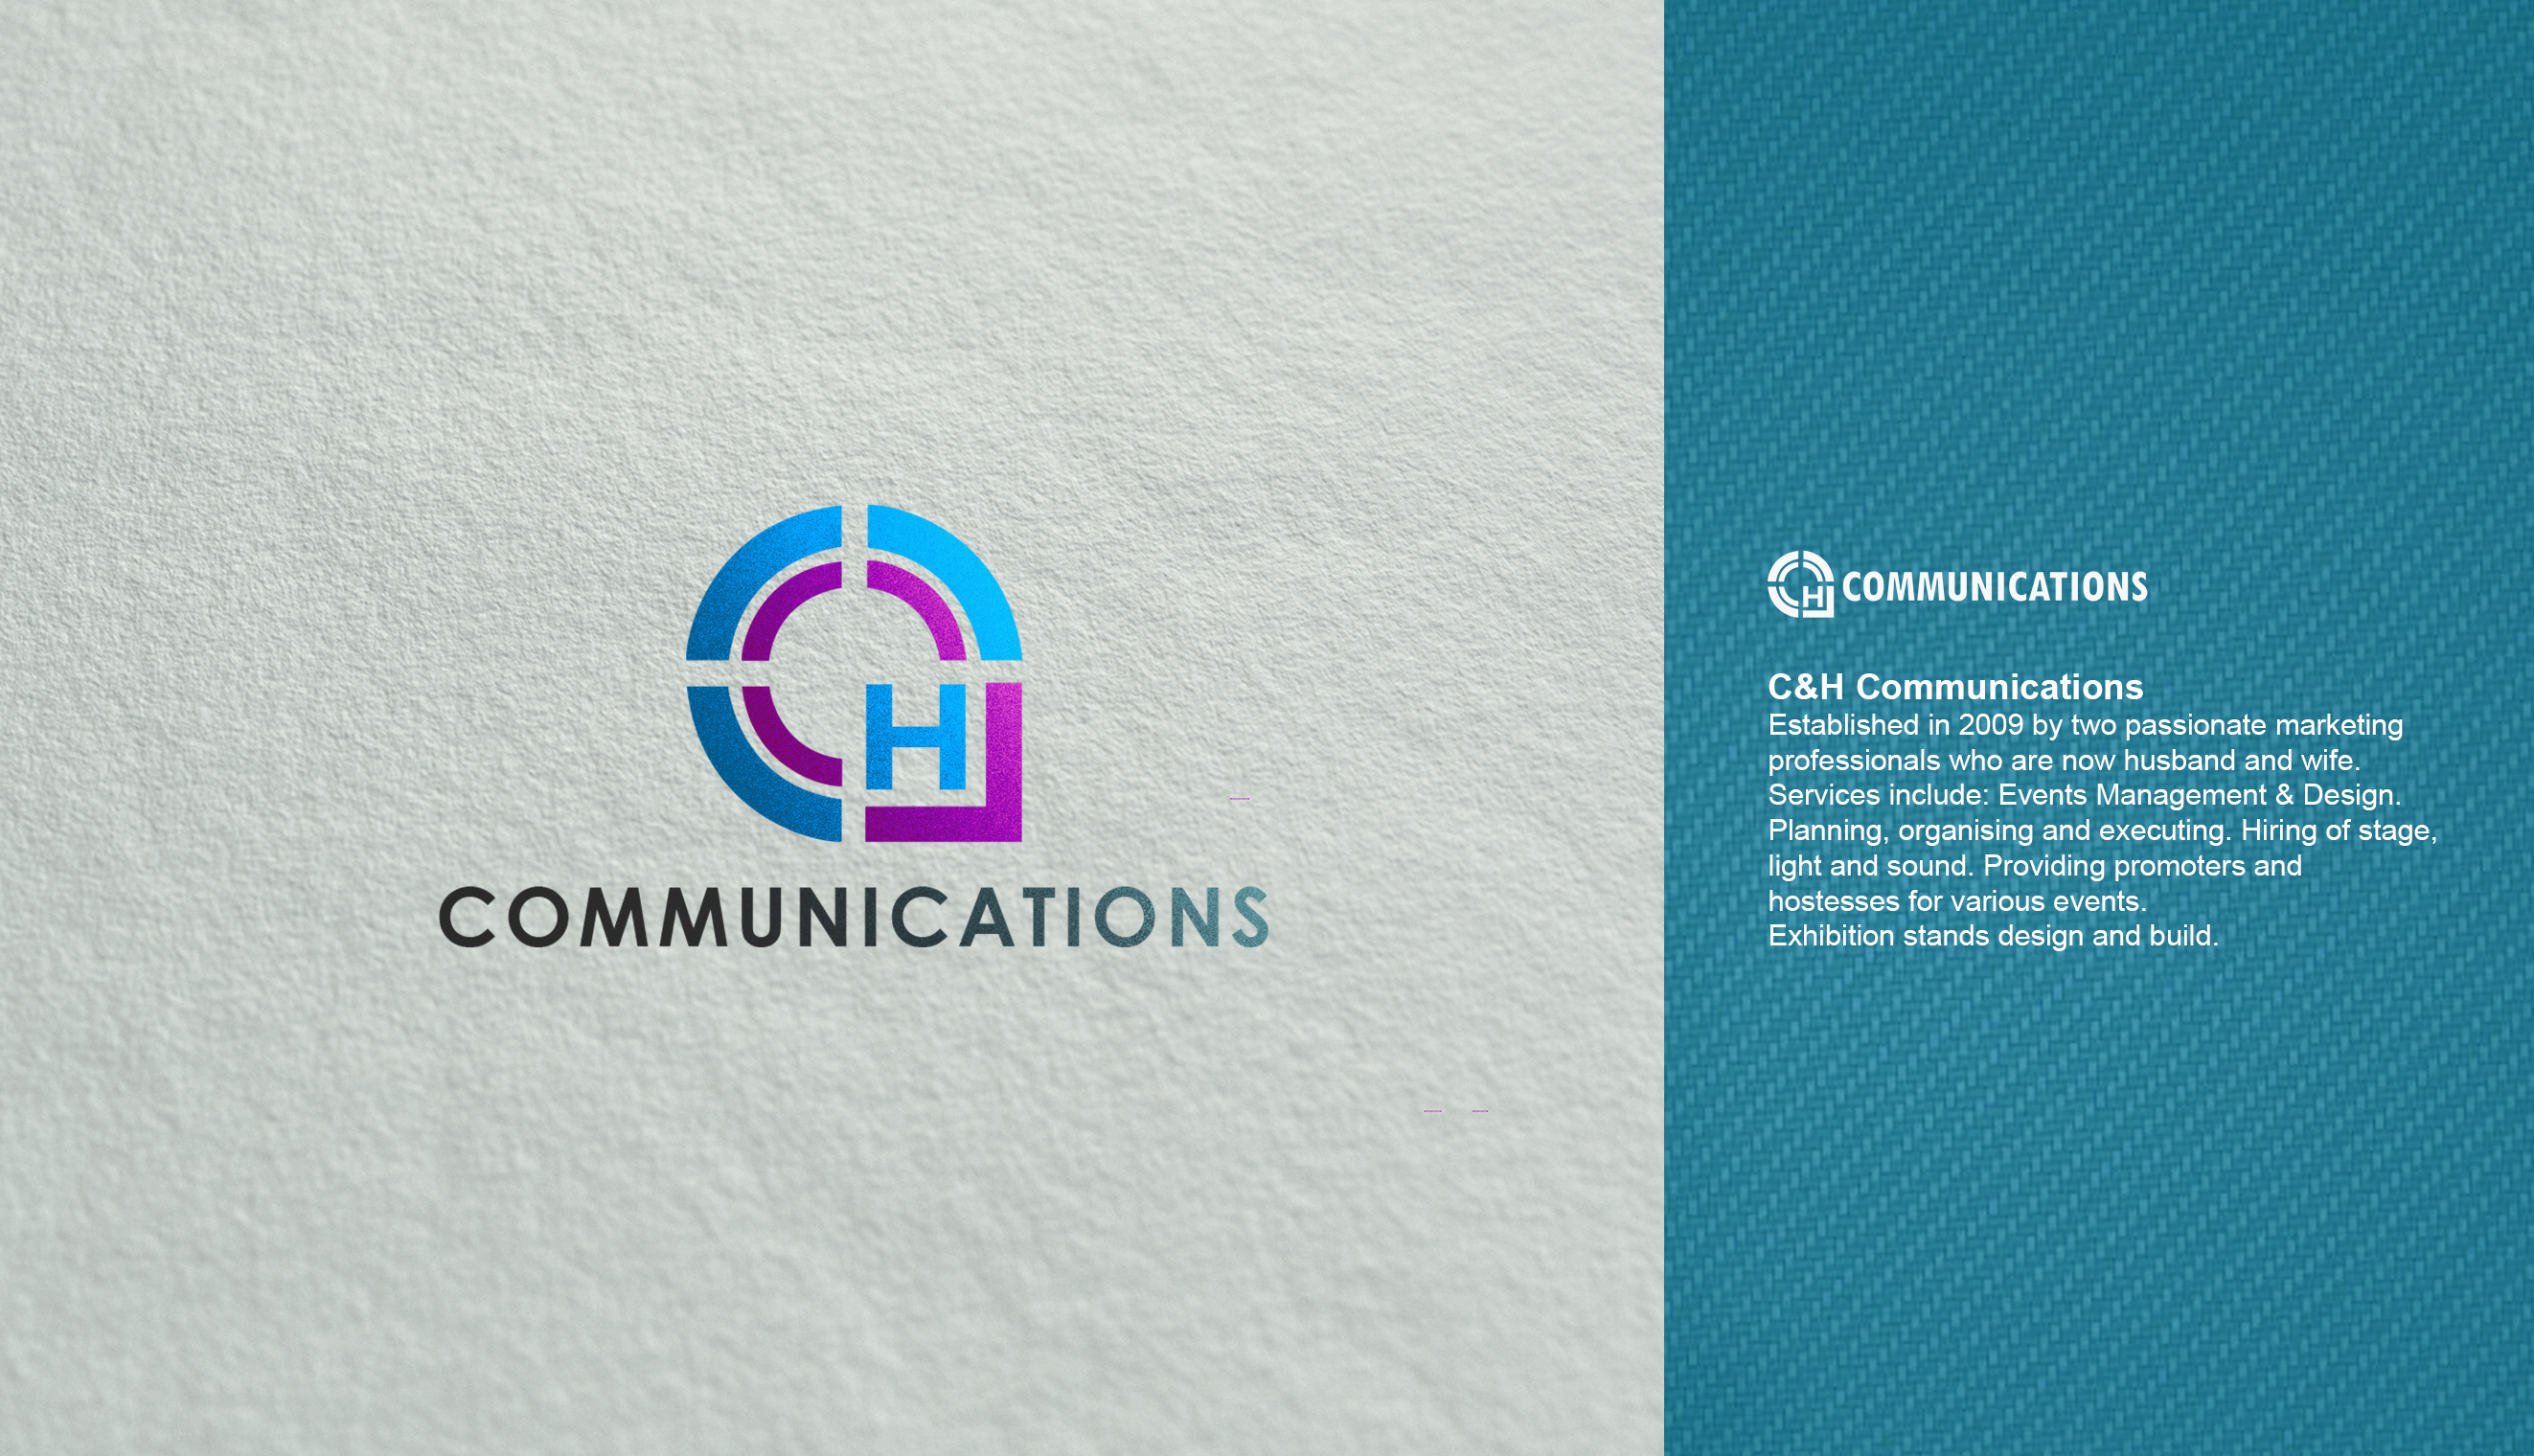 Logo Design by Rijall Blues - Entry No. 78 in the Logo Design Contest Artistic Logo Design for C&H Communications.